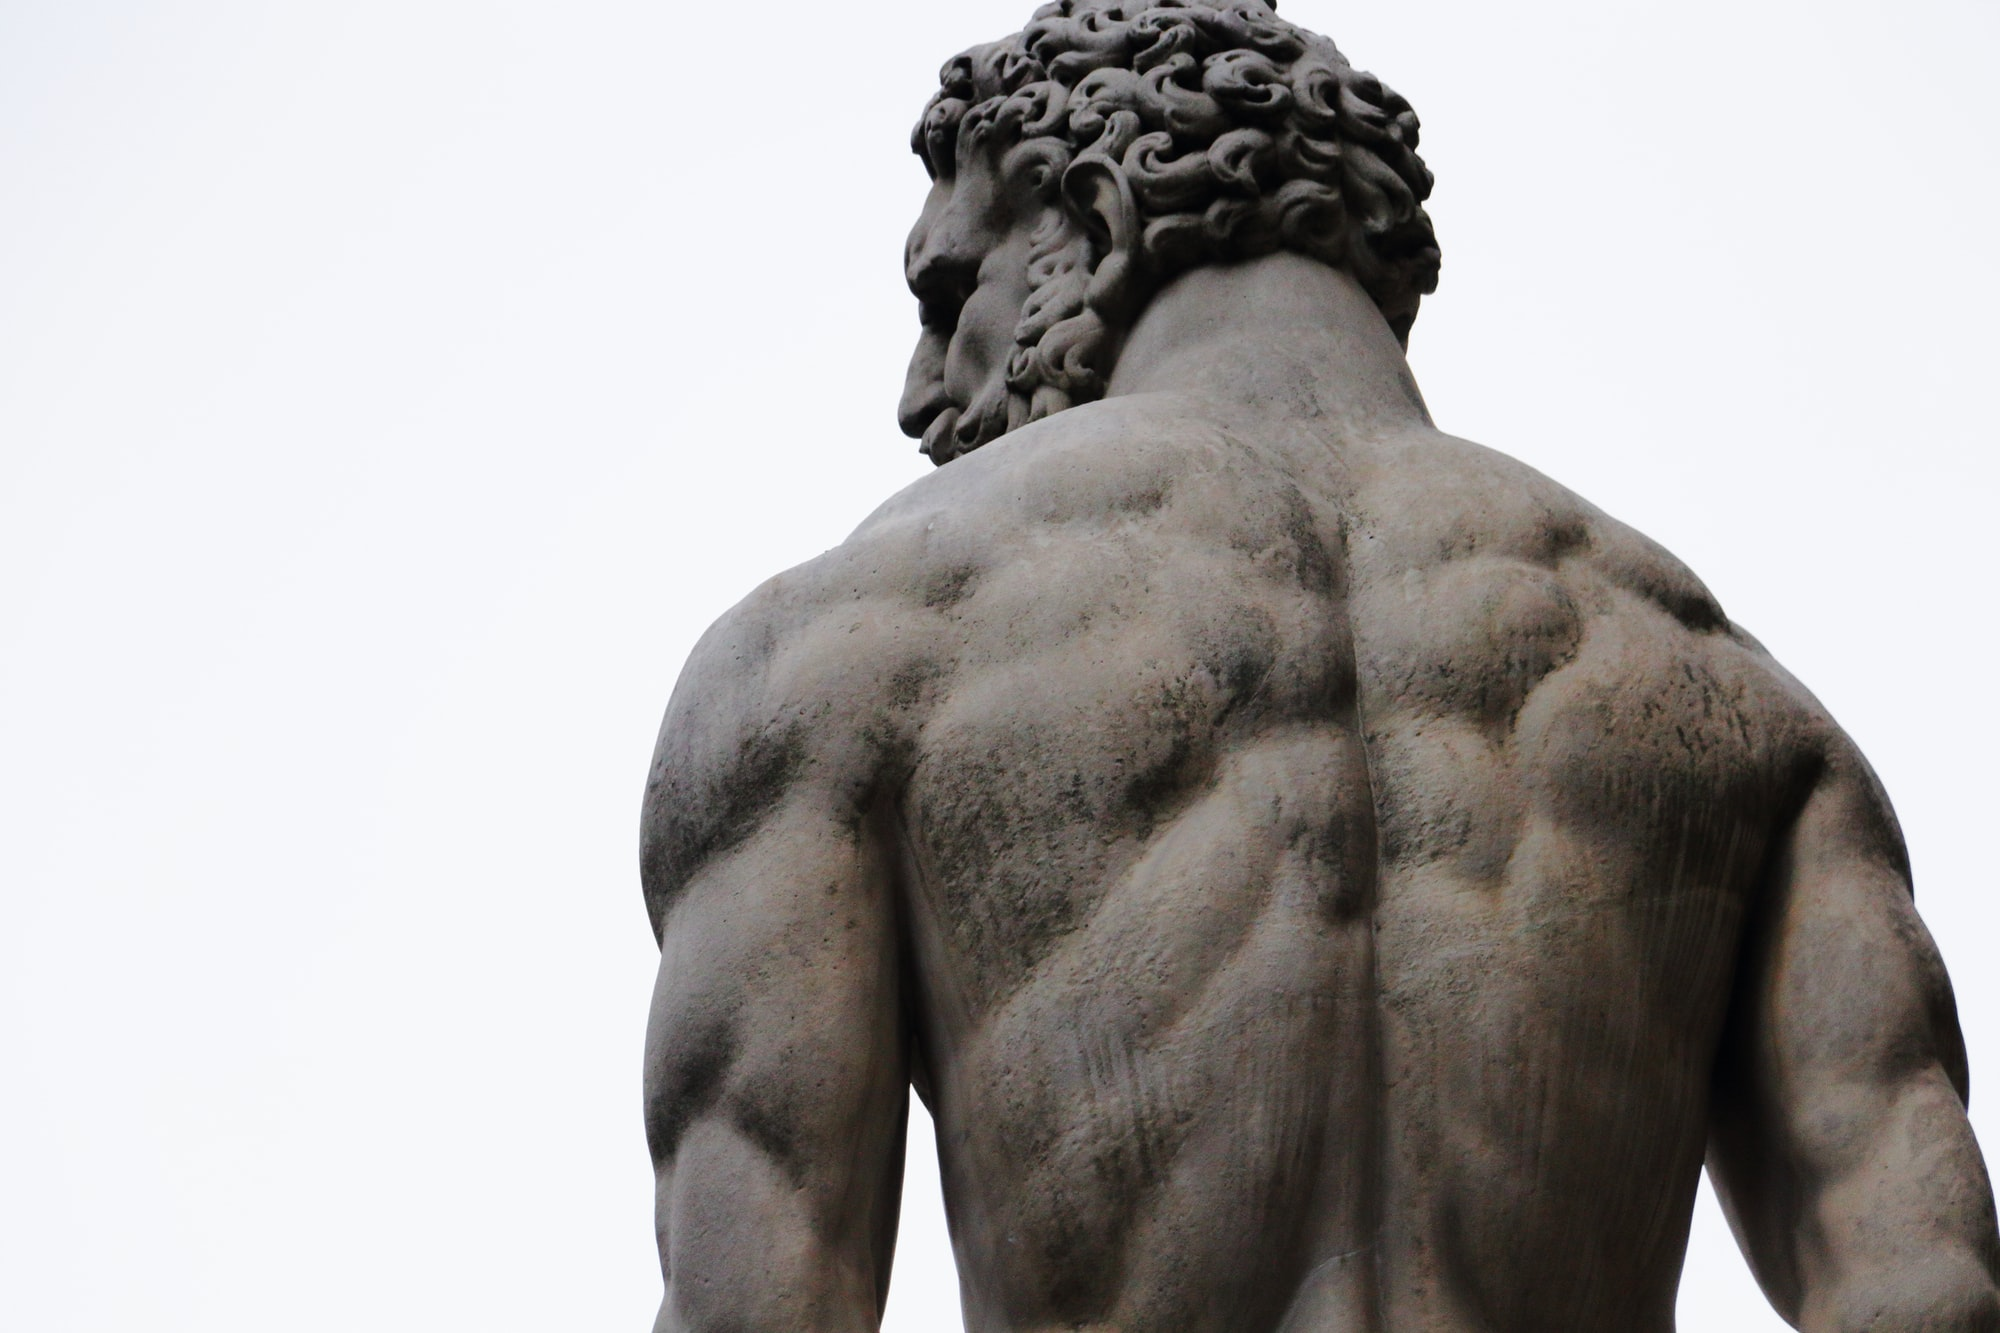 Back of Hercules in main square in Florence, Italy.